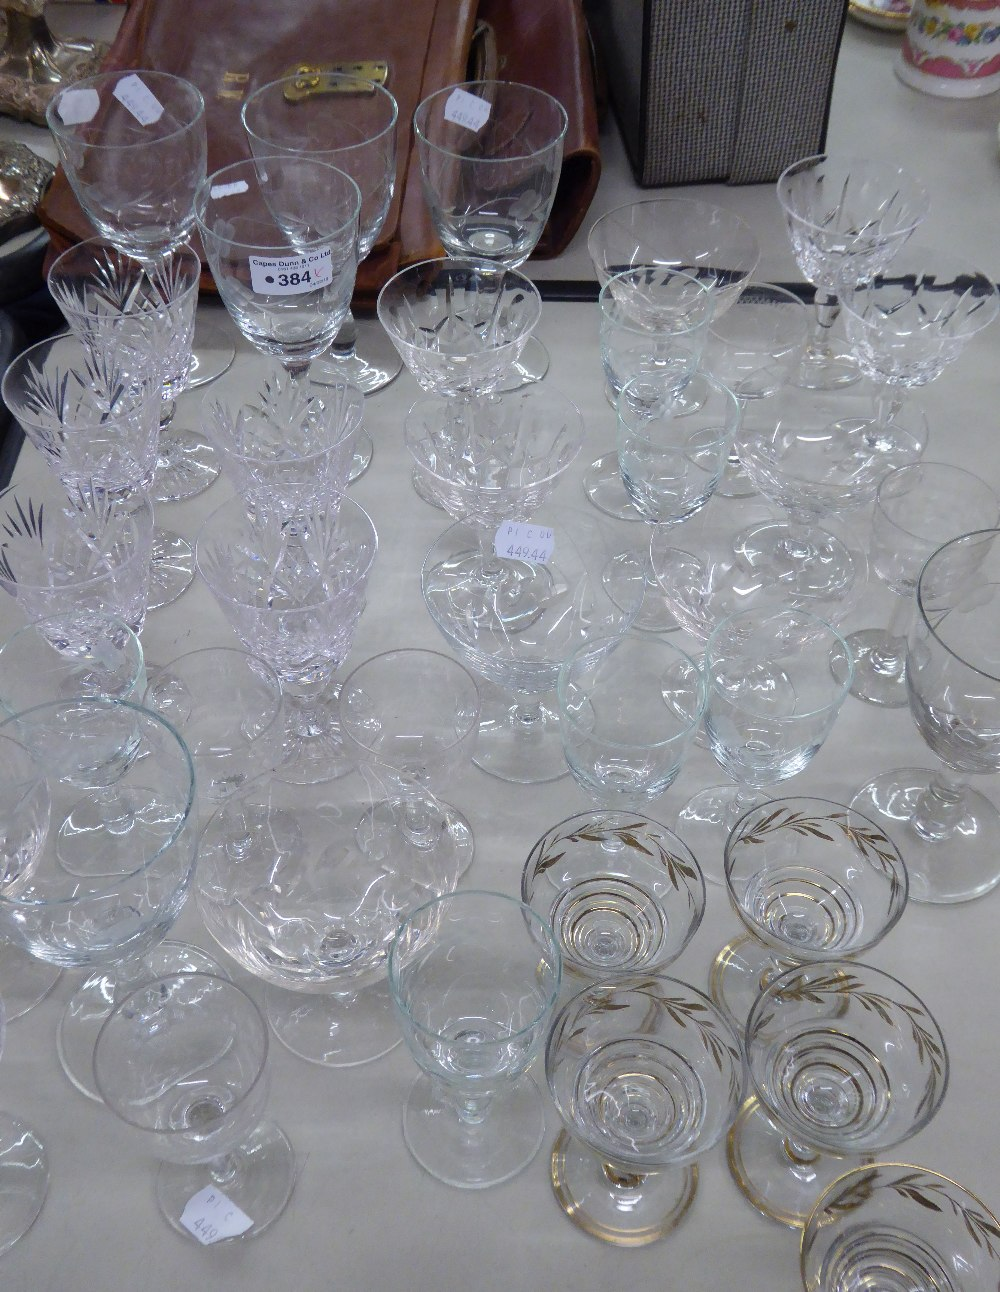 Lot 384 - DRINKING GLASSES TO INCLUDE; WINE, SHERRY GLASSES ETC...